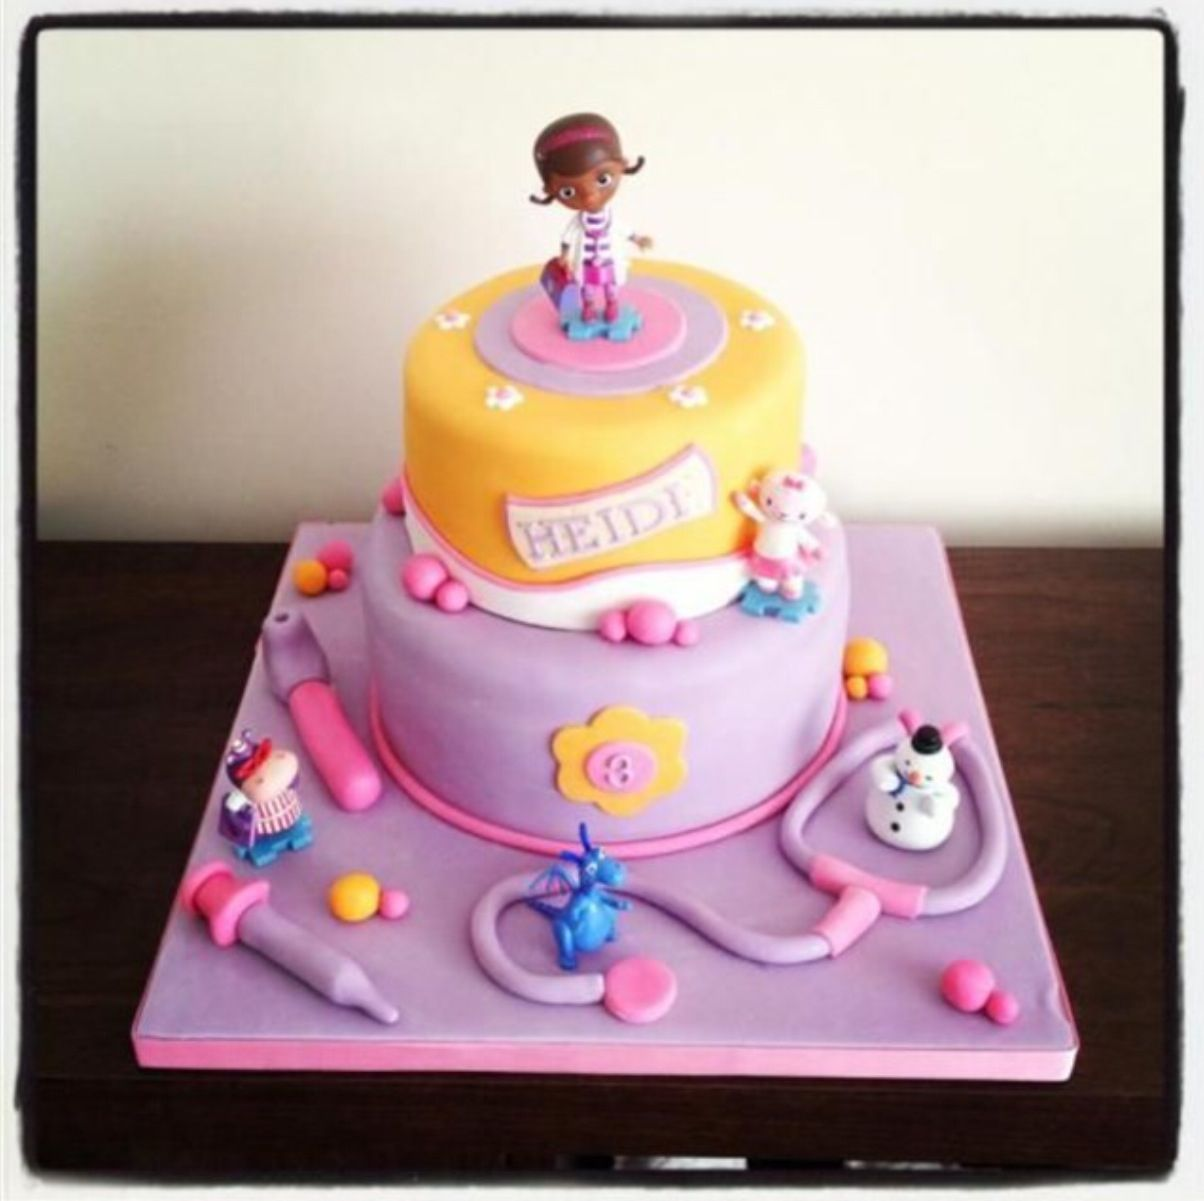 Dr la peluche NS 2nd Bday Pinterest Cake Birthday cakes and